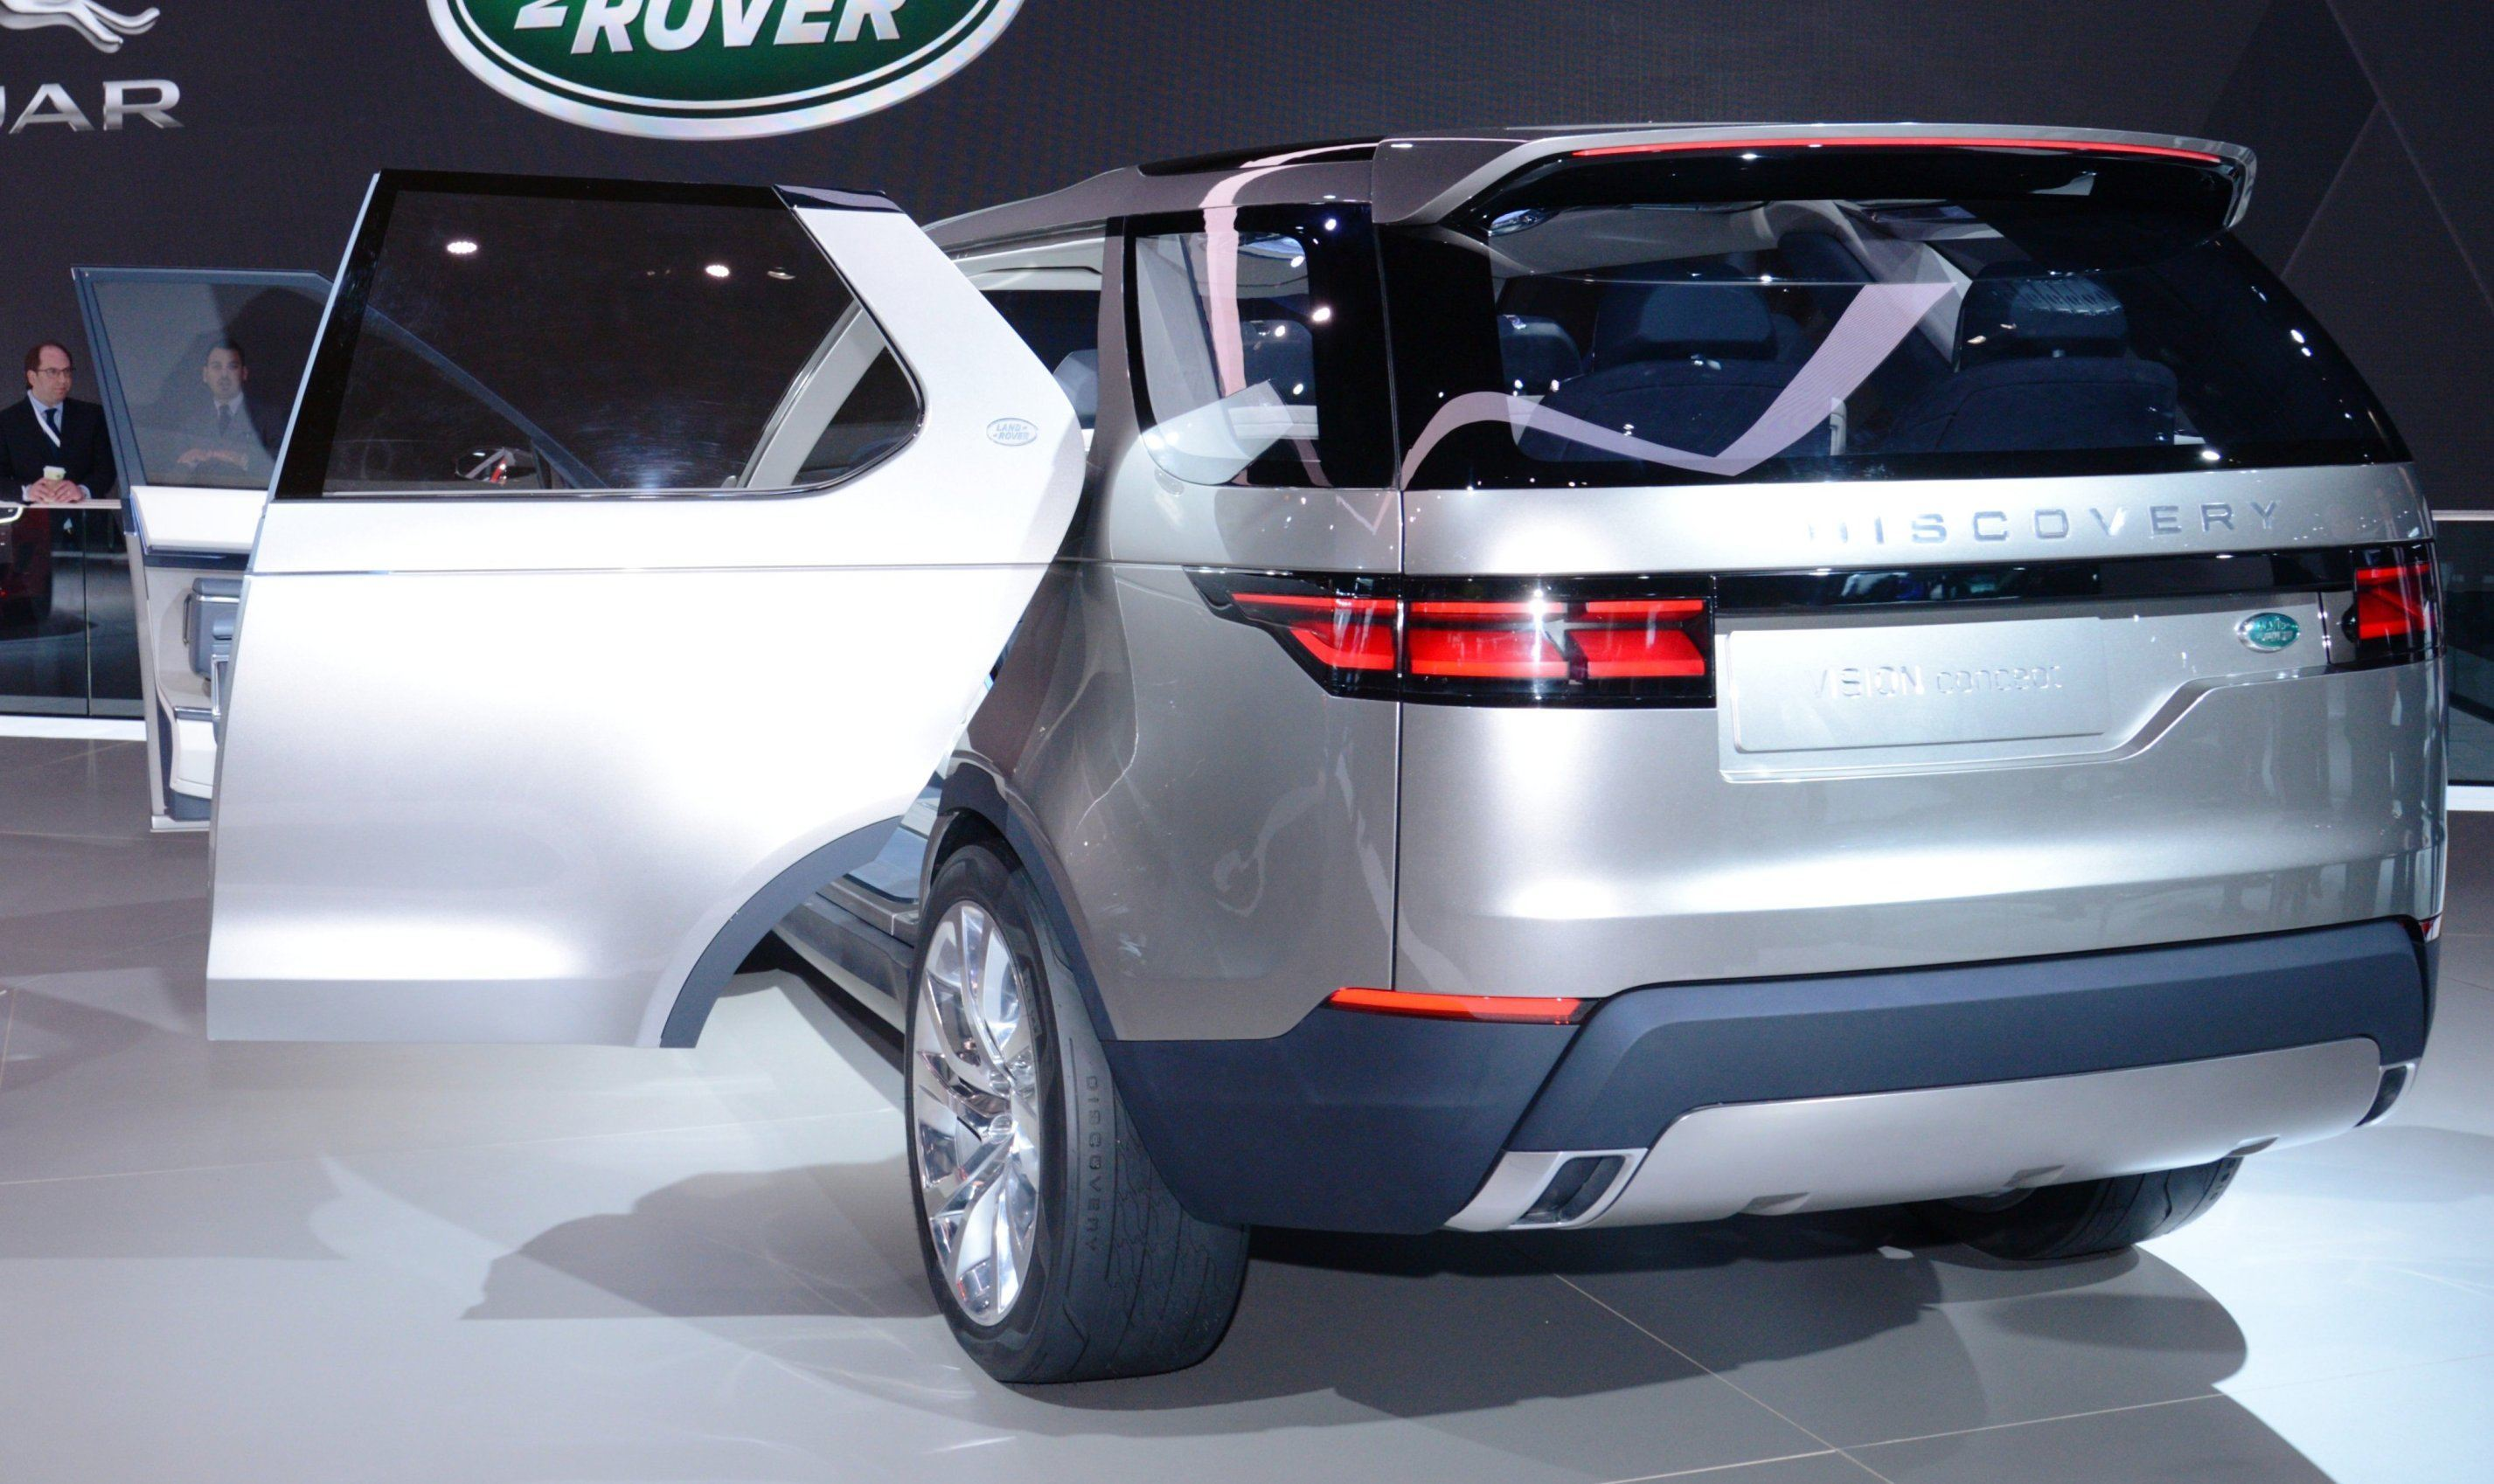 makes auto land discovery rover news debut landrover new crossover sport its driving